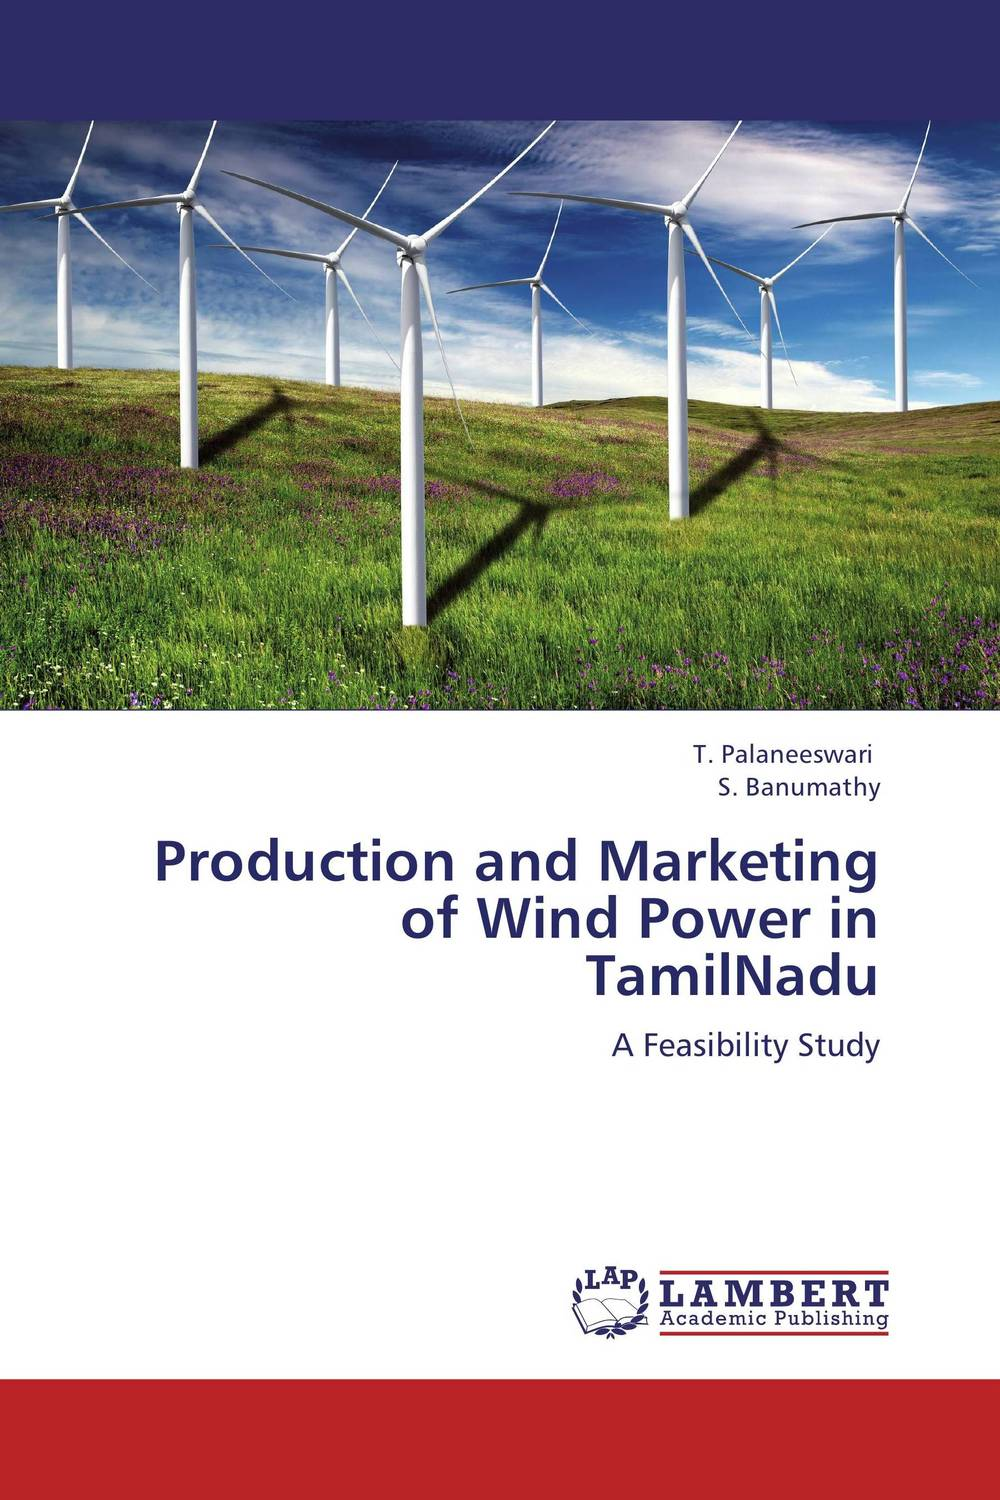 Production and Marketing of Wind Power in TamilNadu alison janet koper the development of an effective wind energy regime in nova scotia